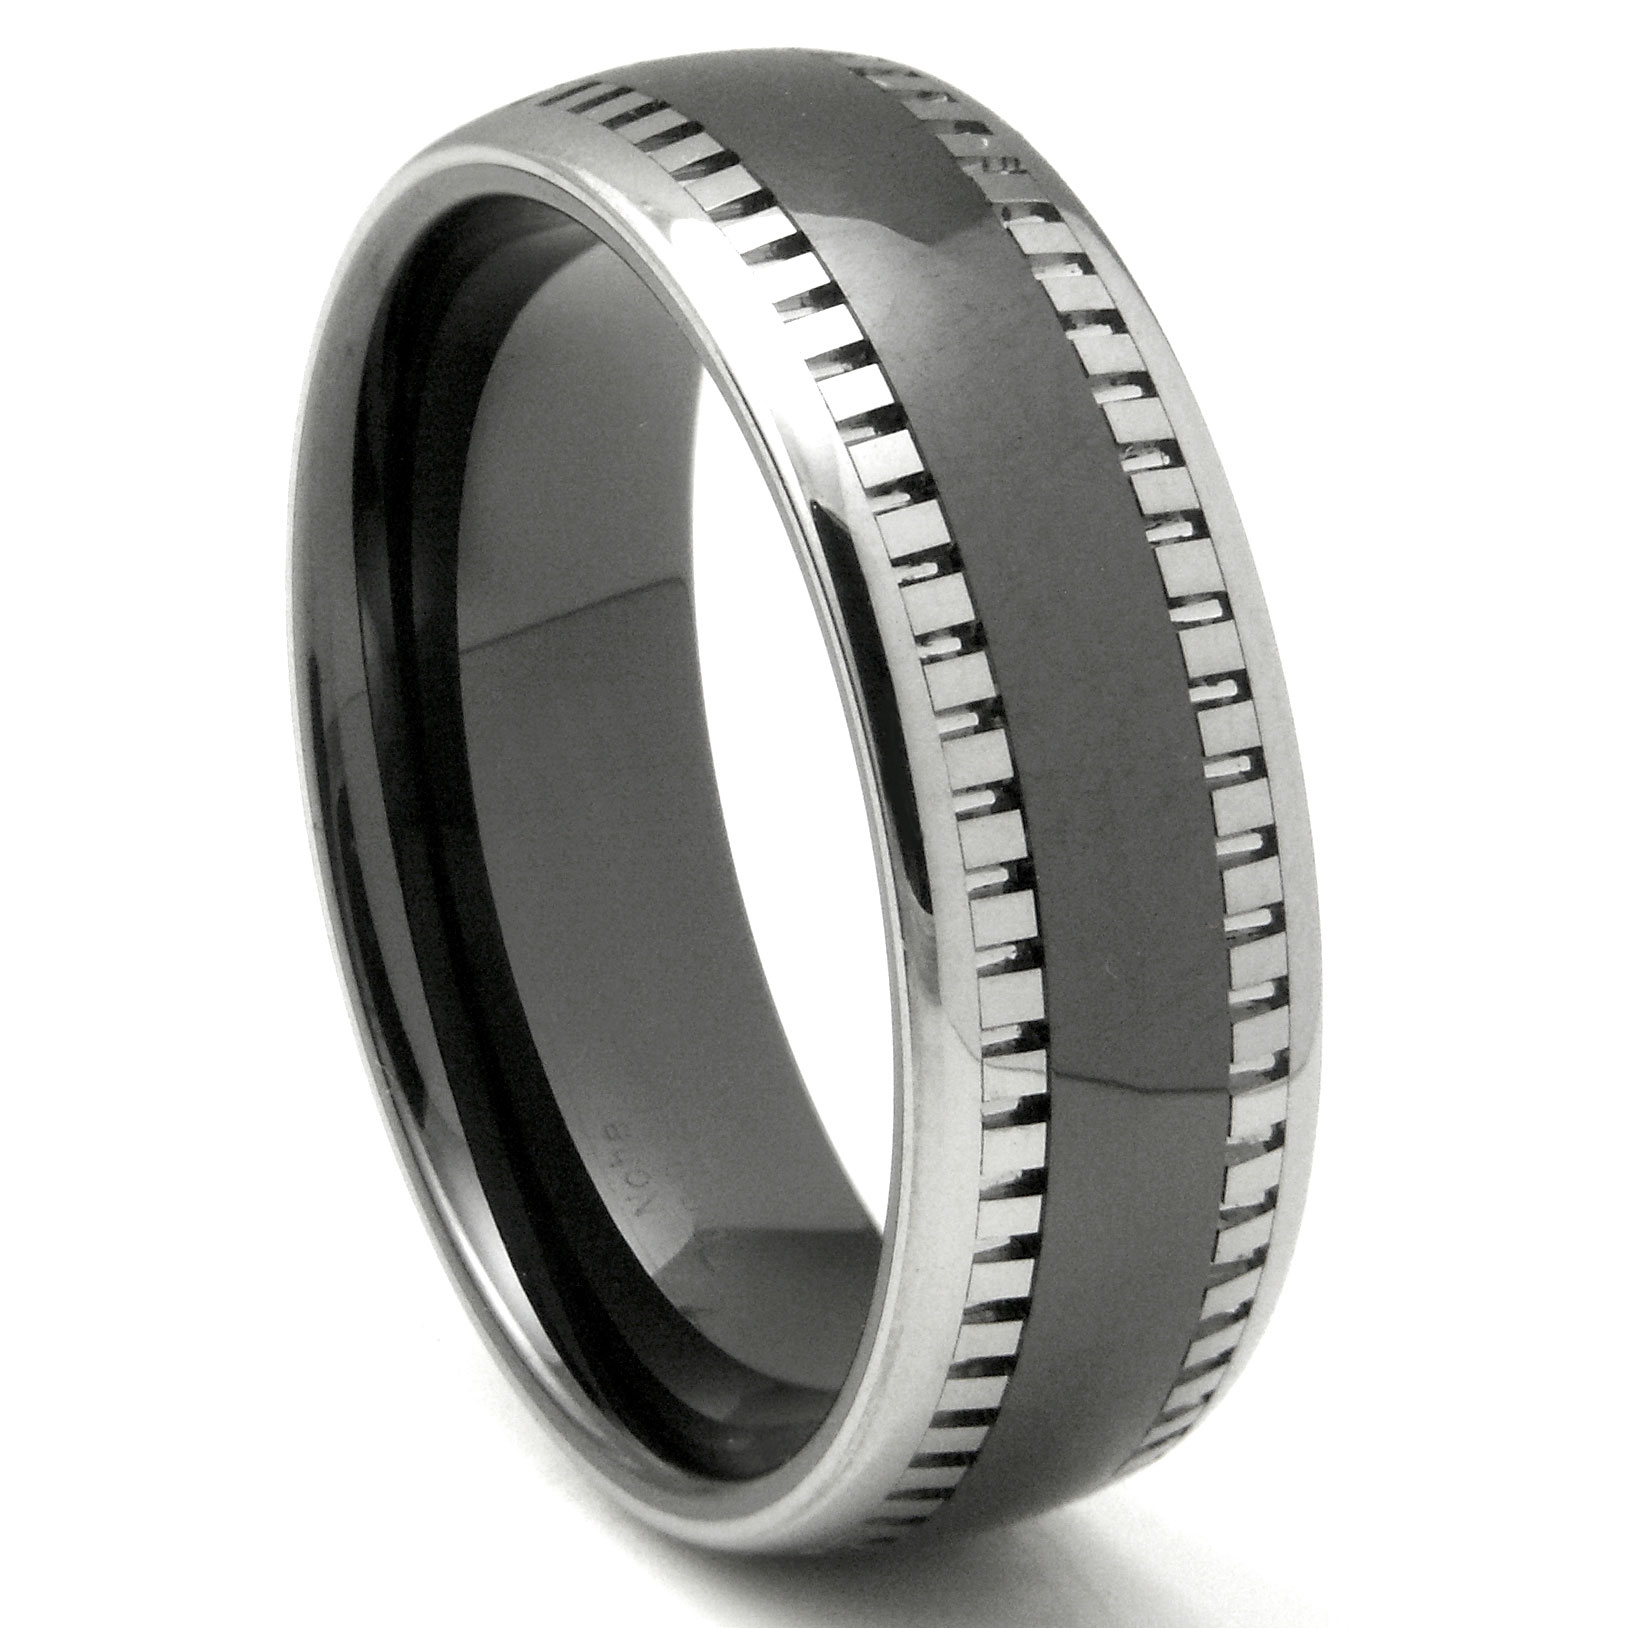 products steel men carbide matte corrosion titanium stainless rings wedding rust allergic black gold for no tungsten intl not rose finished weight fade